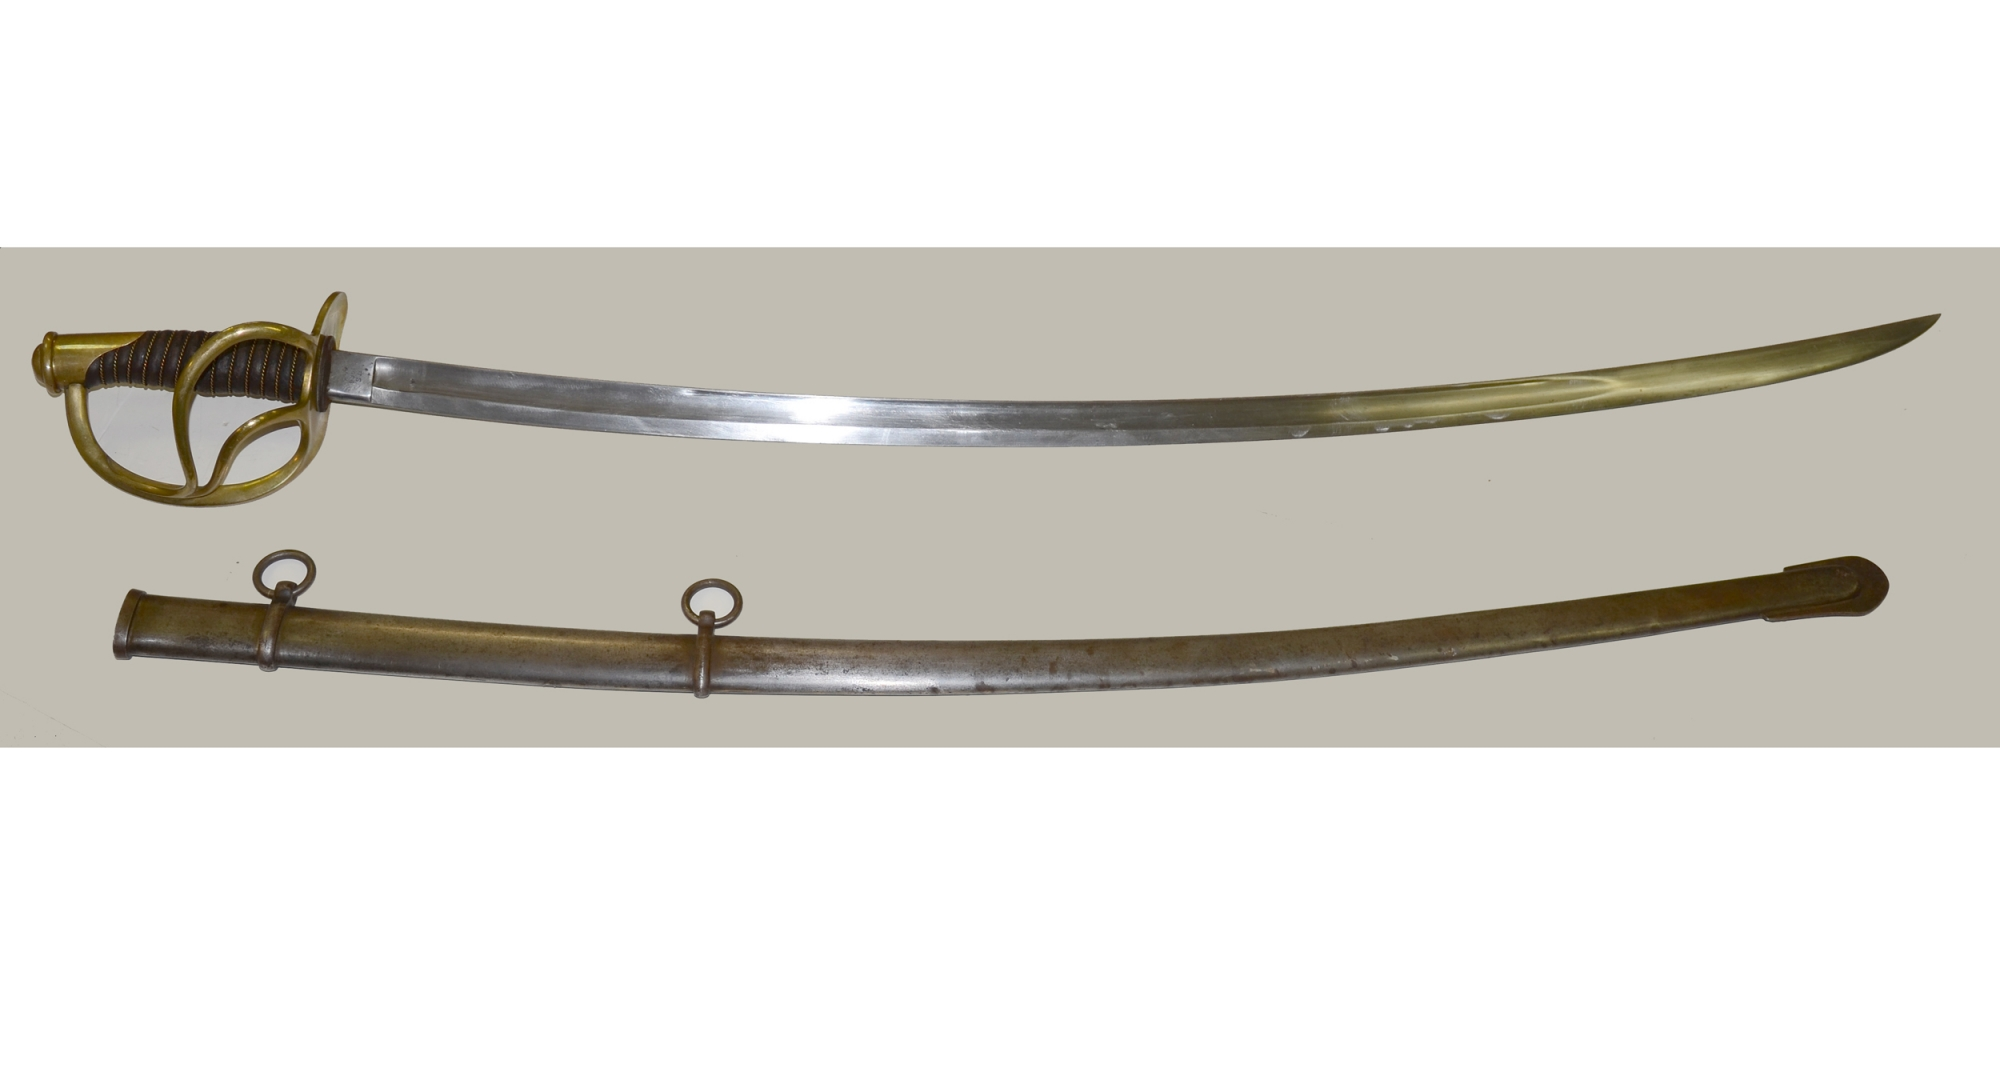 MODEL 1860 CAVALRY SABER BY ROBY DATED 1864